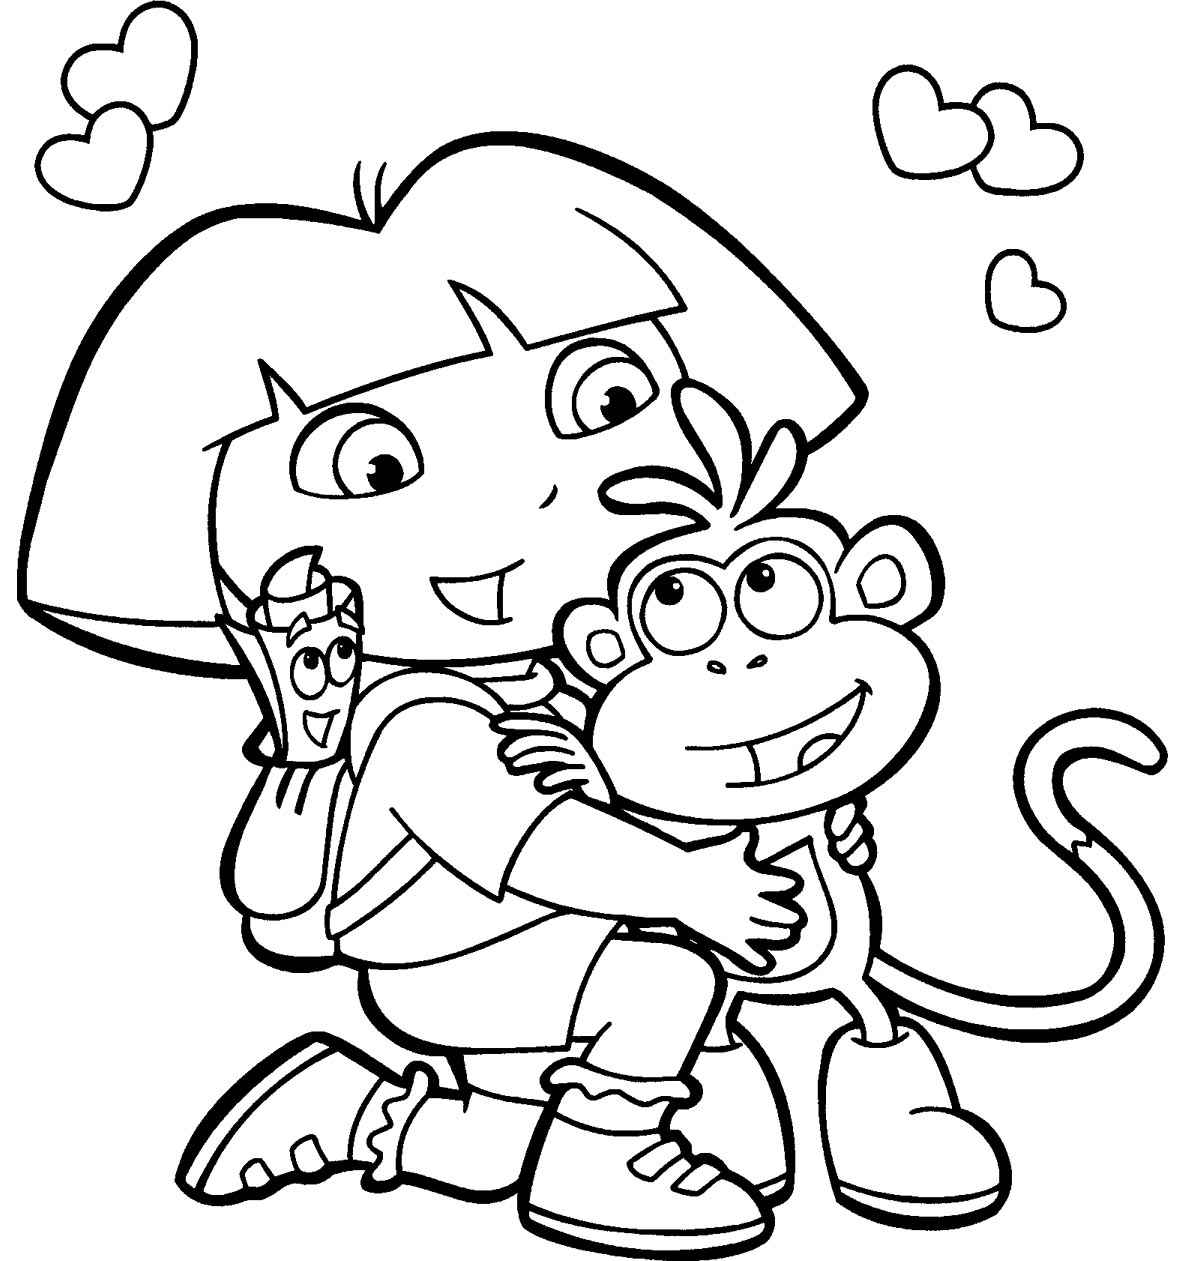 Dora the explorer printable coloring pages for free for Dora the explorer coloring page